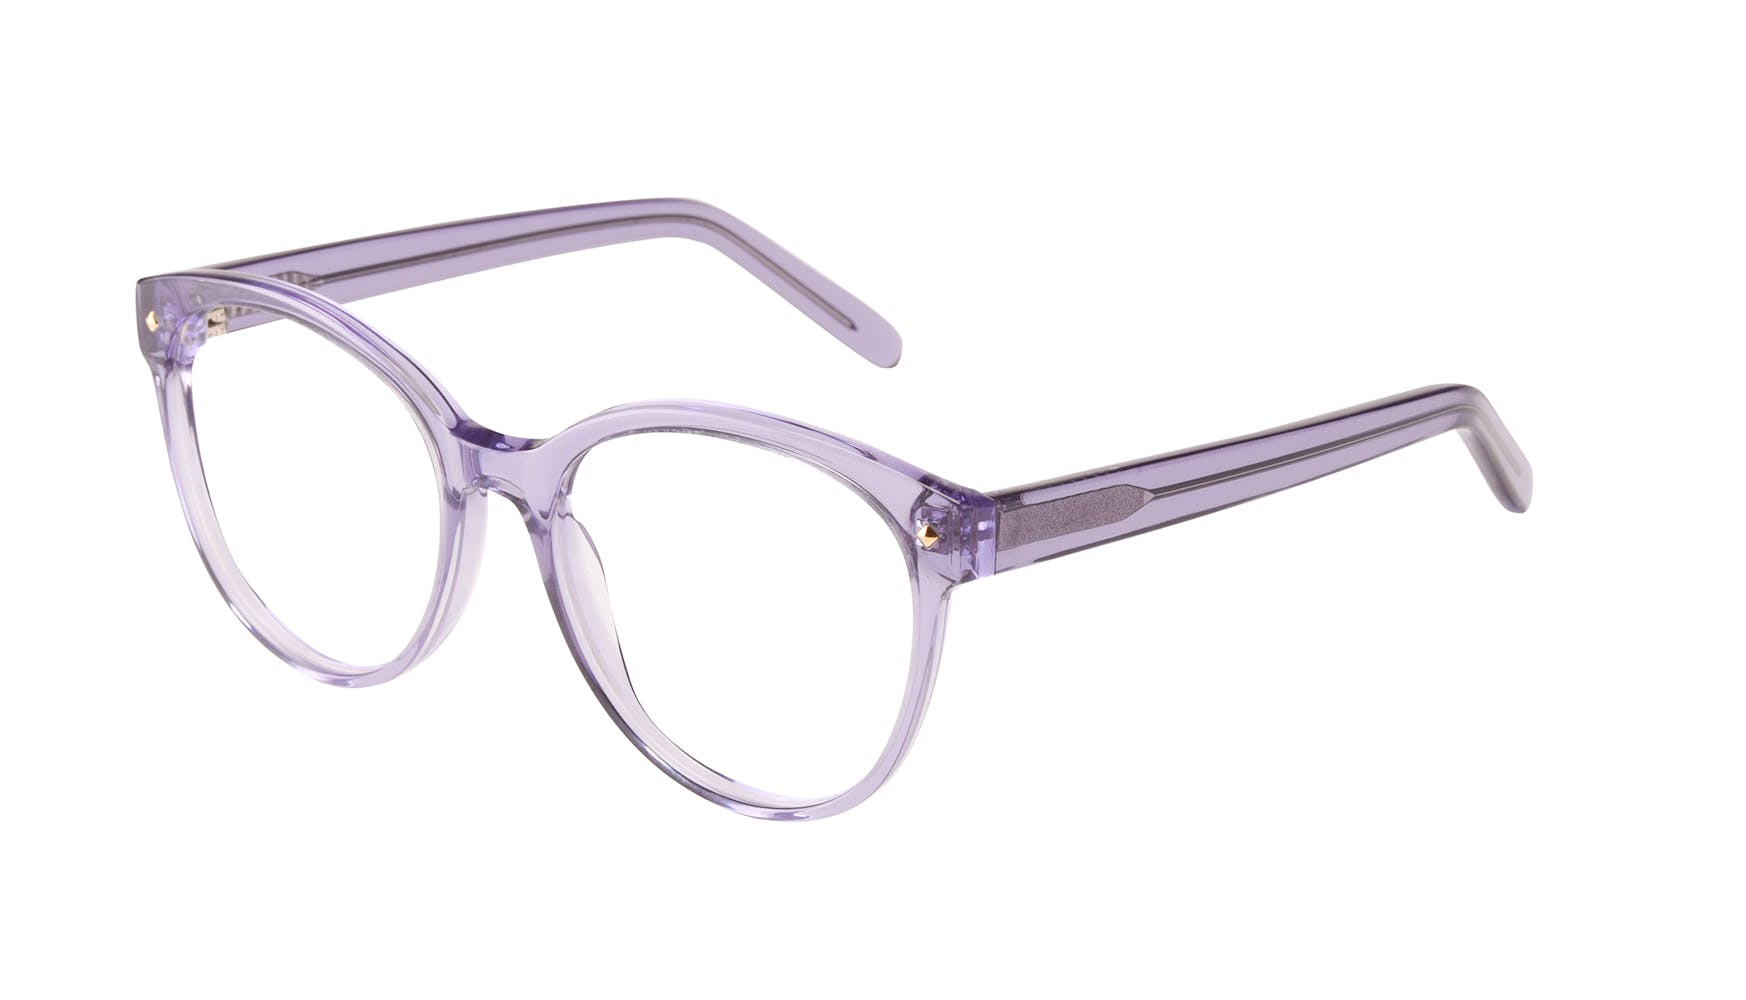 Affordable Fashion Glasses Round Eyeglasses Women Eclipse Lavender Tilt